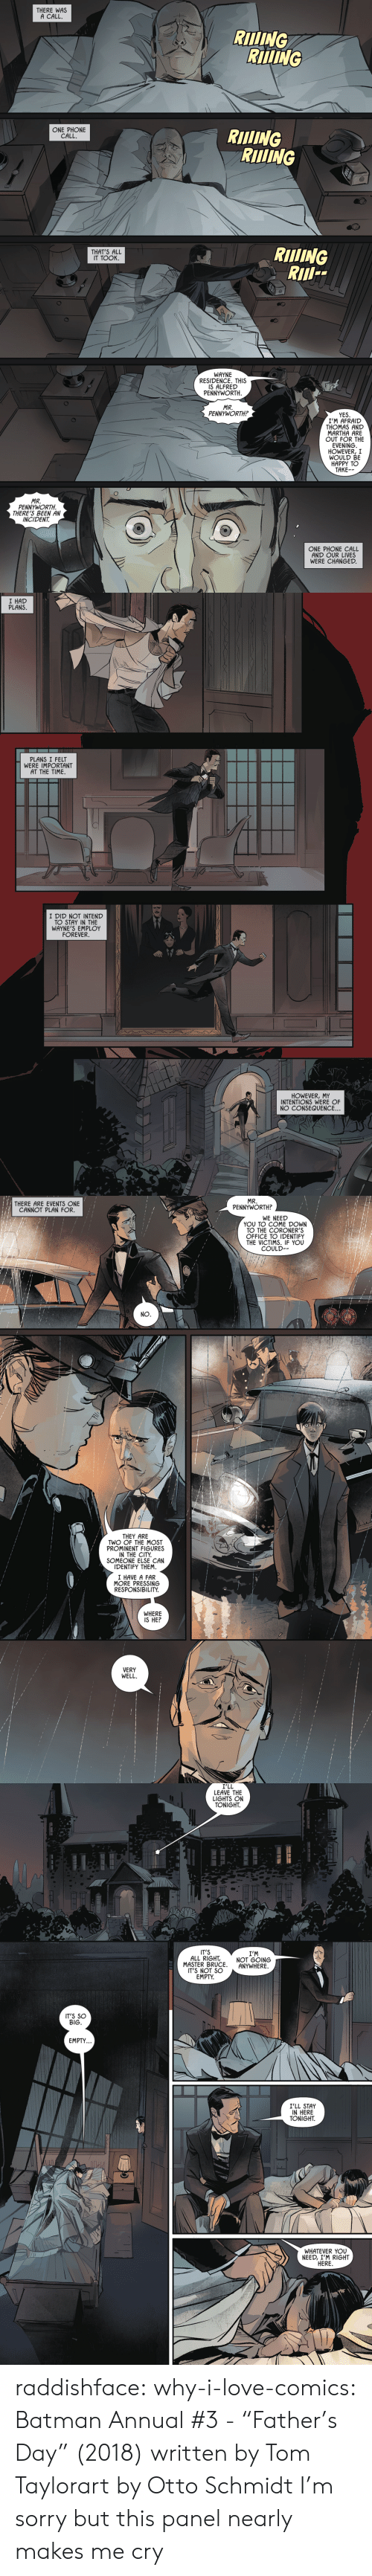 """Batman, Fathers Day, and Love: THERE WAS  A CALL.  RIING  RIDING  ONE PHONE  CALL  RIlING  RIING  RIlING  RII  THAT'S ALL  IT TOOK  WAYNE  RESIDENCE. THIS  IS ALFRED  PENNYWORTH  MR.  PENNYWORTH?  YES  I'M AFRAID  THOMAS AND  MARTHA ARE  OUT FOR THE  EVENING  HOWEVER, I  WOULD BE  HAPPY TO  TAKE-  MR.  PENNYWORTH  THERE'S BEEN AN  INCIDENT  ONE PHONE CALL  AND OUR LIVES  WERE CHANGED   I HAD  PLANS  PLANS I FELT  WERE IMPORTANT  AT THE TIME  I DID NOT INTEND  TO STAY IN THE  WAYNE'S EMPLOY  FOREVER.  HOWEVER,MY  INTENTIONS WERE OF  NO CONSEQUENCE..   MR.  PENNYWORTH?  THERE ARE EVENTS ONE  CANNOT PLAN FOR.  WE NEED  YOU TO COME DOWN  TO THE CORONER'S  OFFICE TO IDENTIFY  THE VICTIMS. IF YOU  COULD  NO.  THEY ARE  TWO OF THE MOST  PROMINENT FIGURES  IN THE CITY  SOMEONE ELSE CAN  IDENTIFY THEM.  I HAVE A FAR  MORE PRESSING  RESPONSIBILITY  WHERE  IS HE?  VERY  WELL   I'LL  LEAVE THE  LIGHTS ON  TONIGHT  IT'S  ALL RIGHT  MASTER BRUCE  IT'S NOT SO  EMPTY  I'M  NOT GOING  ANYWHERE  IT'S SO  BIG.  EMPTY..  I'LL STAY  IN HERE  TONIGHT  WHATEVER YOU  NEED, I'M RIGHT  HERE raddishface:   why-i-love-comics:  Batman Annual #3 - """"Father's Day"""" (2018) written by Tom Taylorart by Otto Schmidt   I'm sorry but this panel nearly makes me cry"""